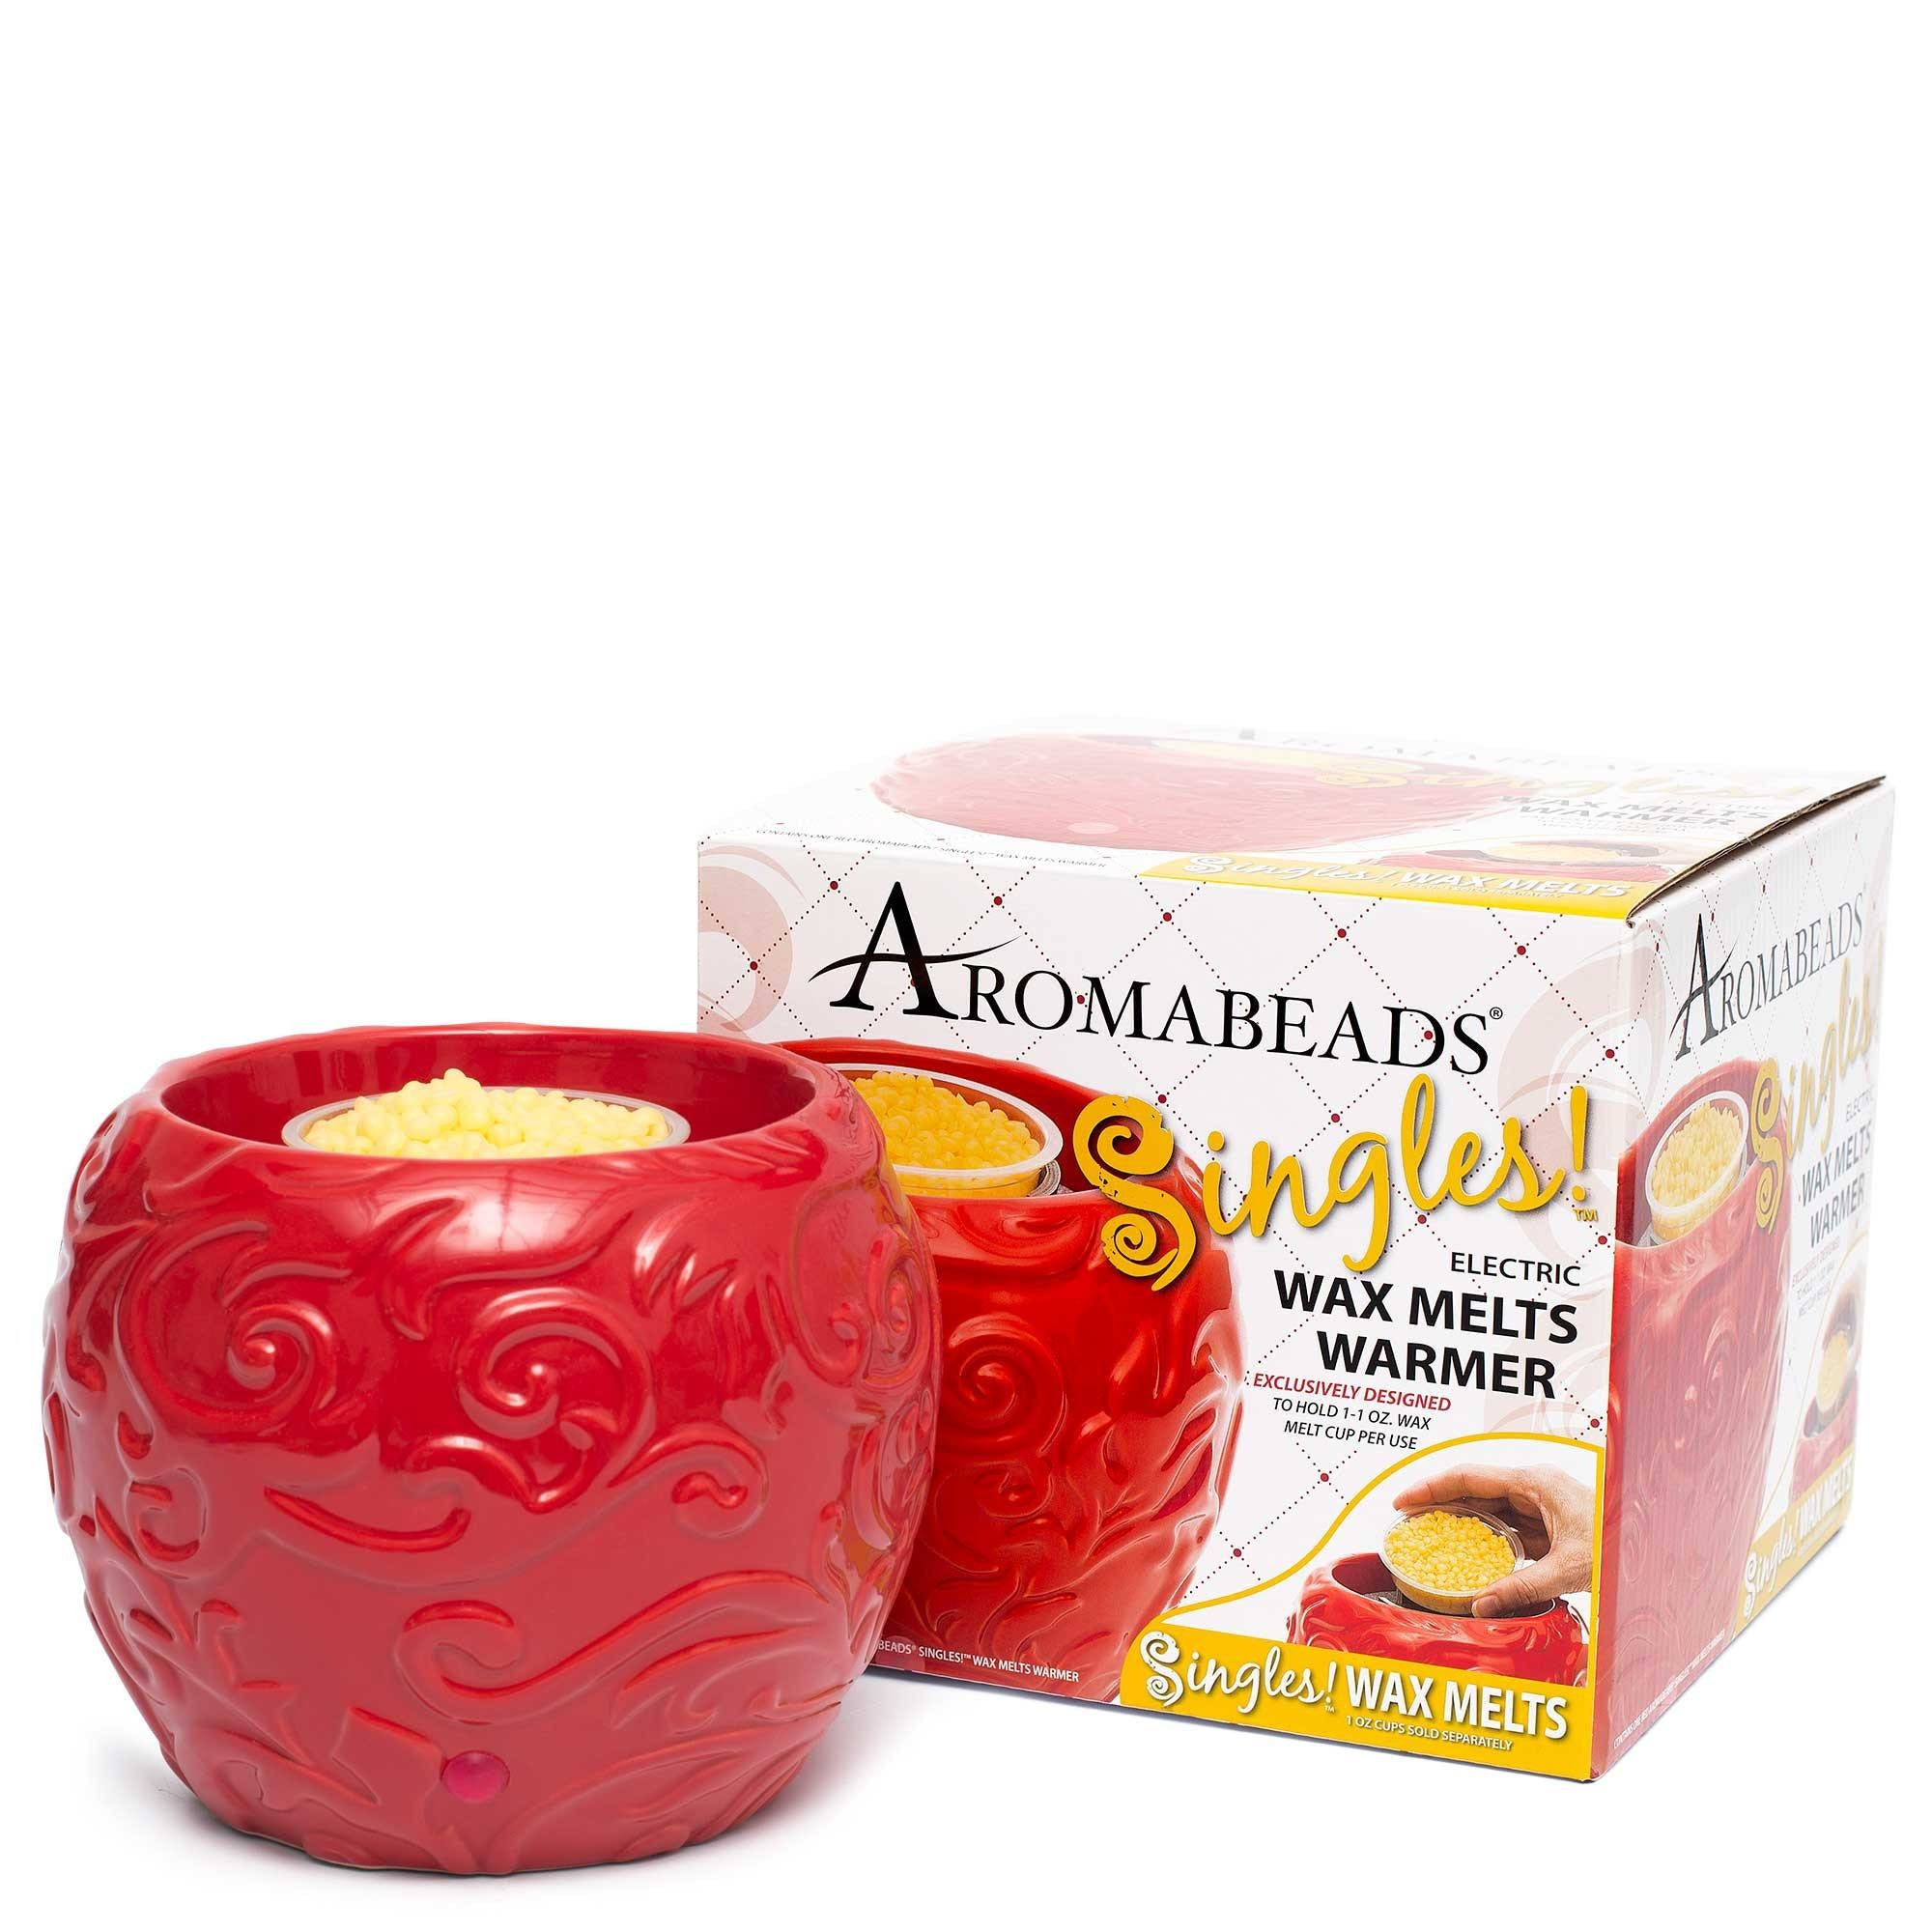 Aromabeads Singles Holiday Scented Wax Melts - Candlemart.com - 3